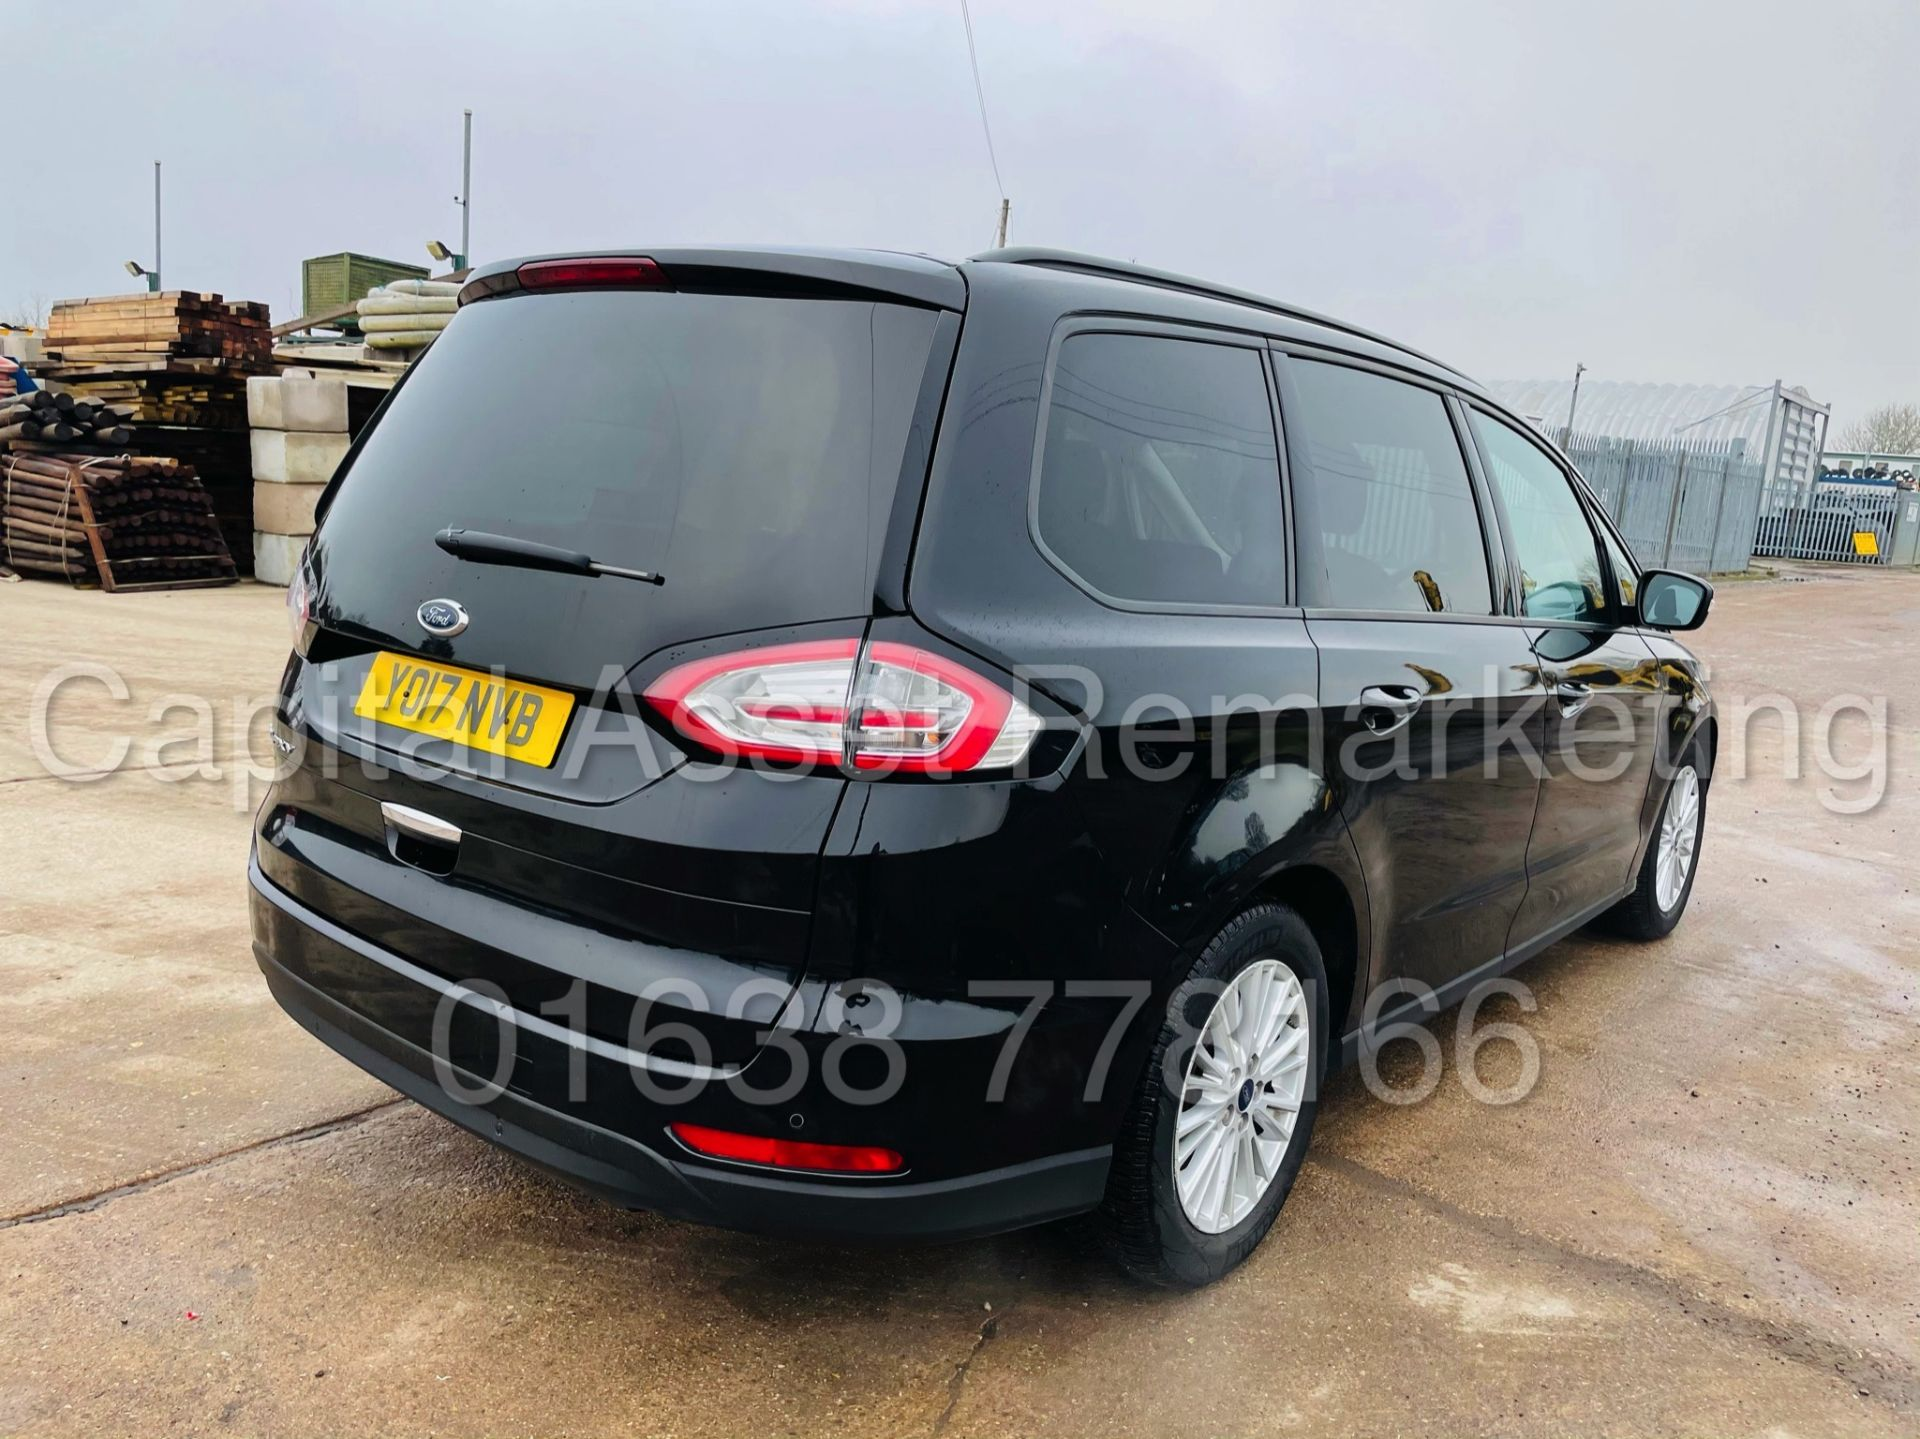 (On Sale) FORD GALAXY *ZETEC EDITION* 7 SEATER MPV (2017 - EURO 6) '2.0 TDCI - AUTO' (1 OWNER) - Image 12 of 48